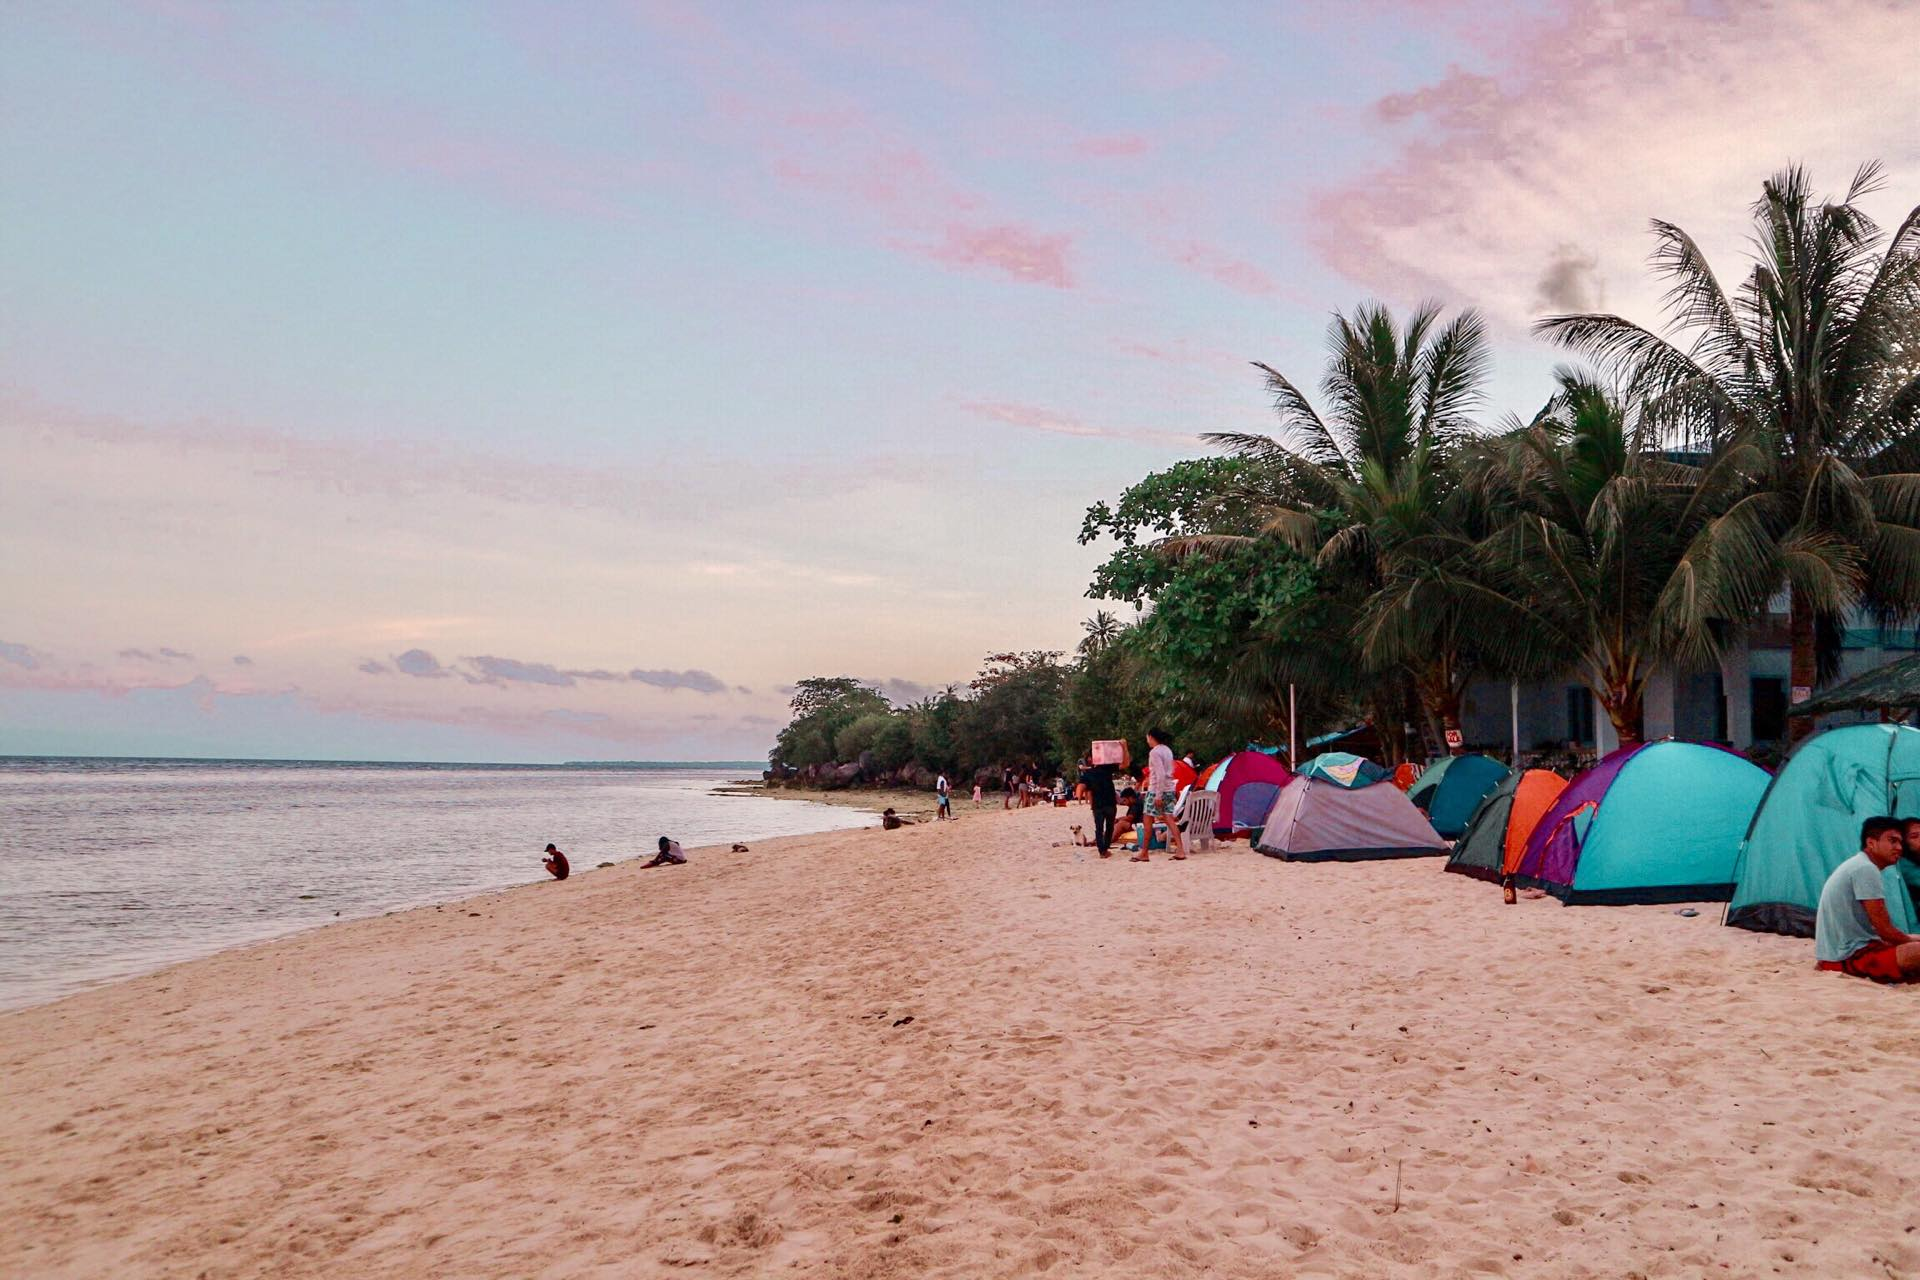 Camping at Lambug Beach in Badian